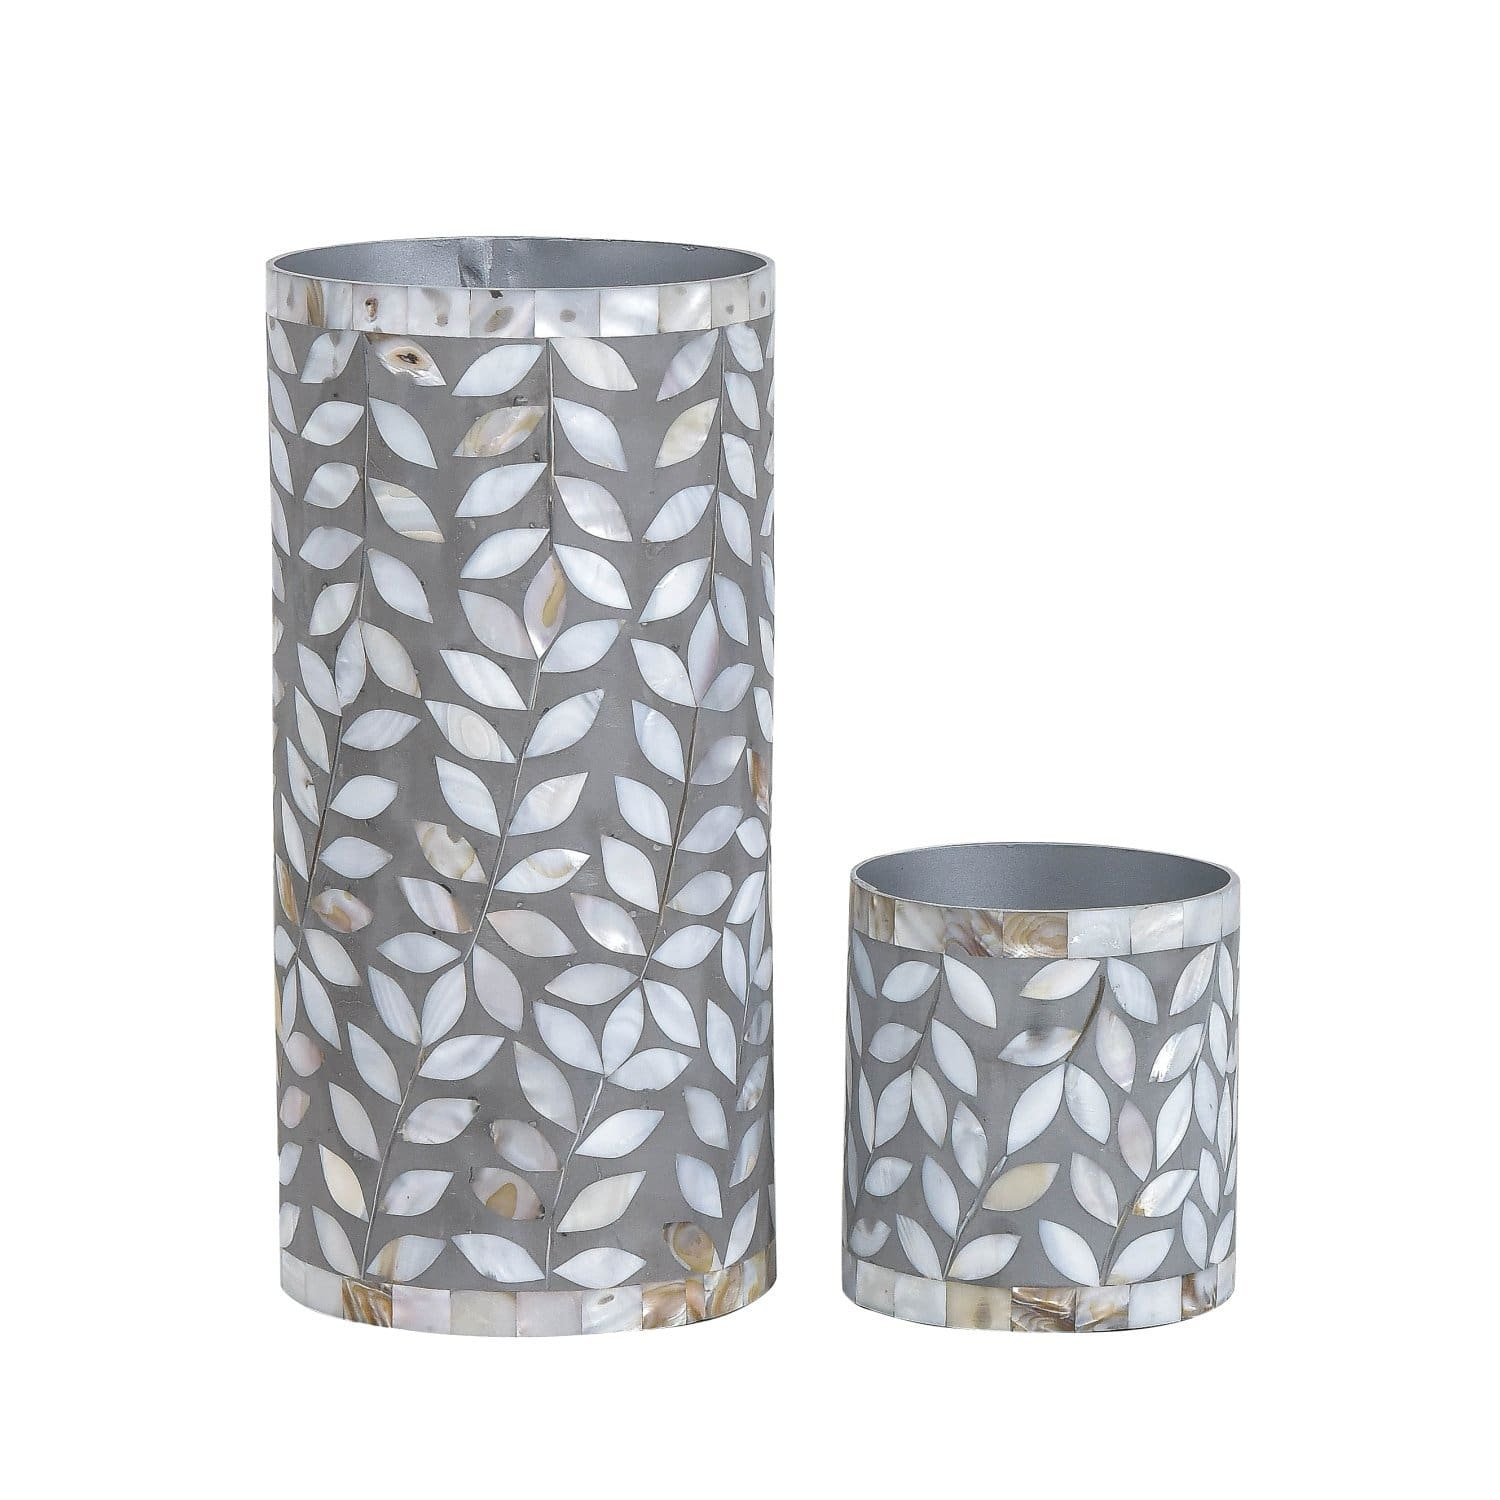 Floral Vase Collection - Small / Mother of Pearl Grey - Vases